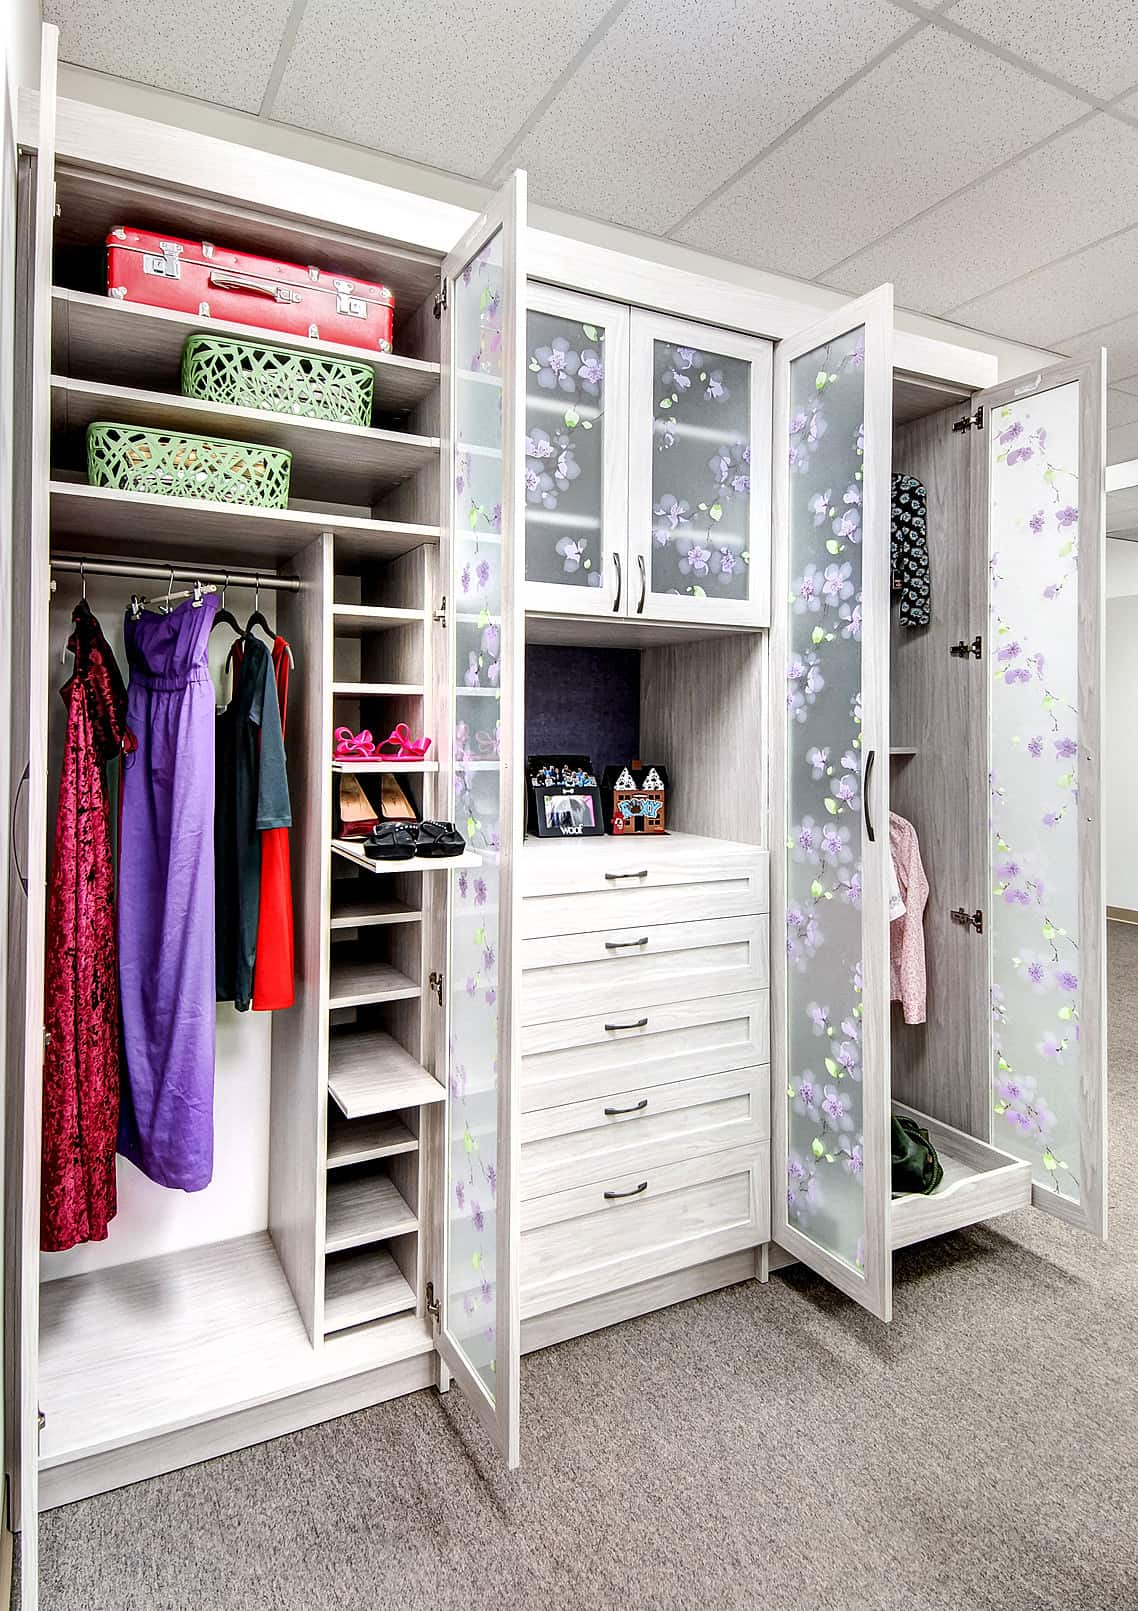 custom-built-reach-in-closets2018-10-11 at 2.41.40 PM